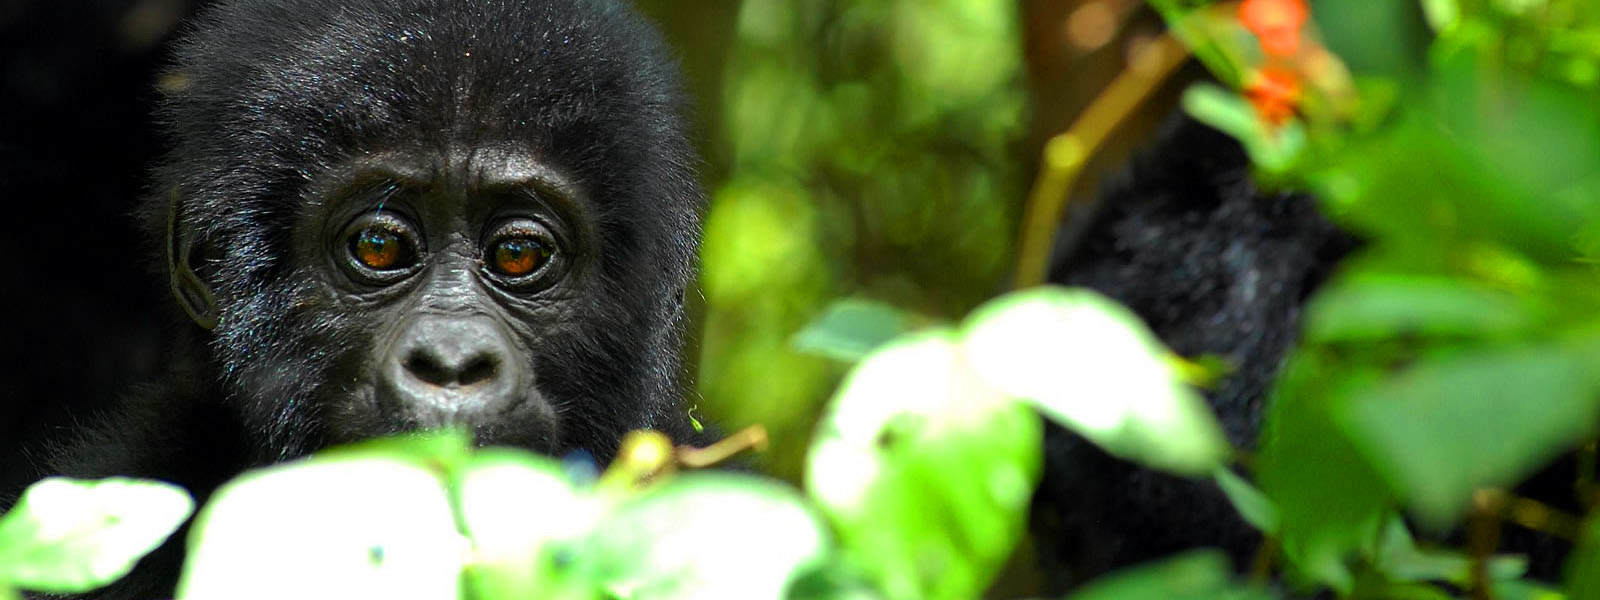 Gorilla Adventure Trips & Expeditions